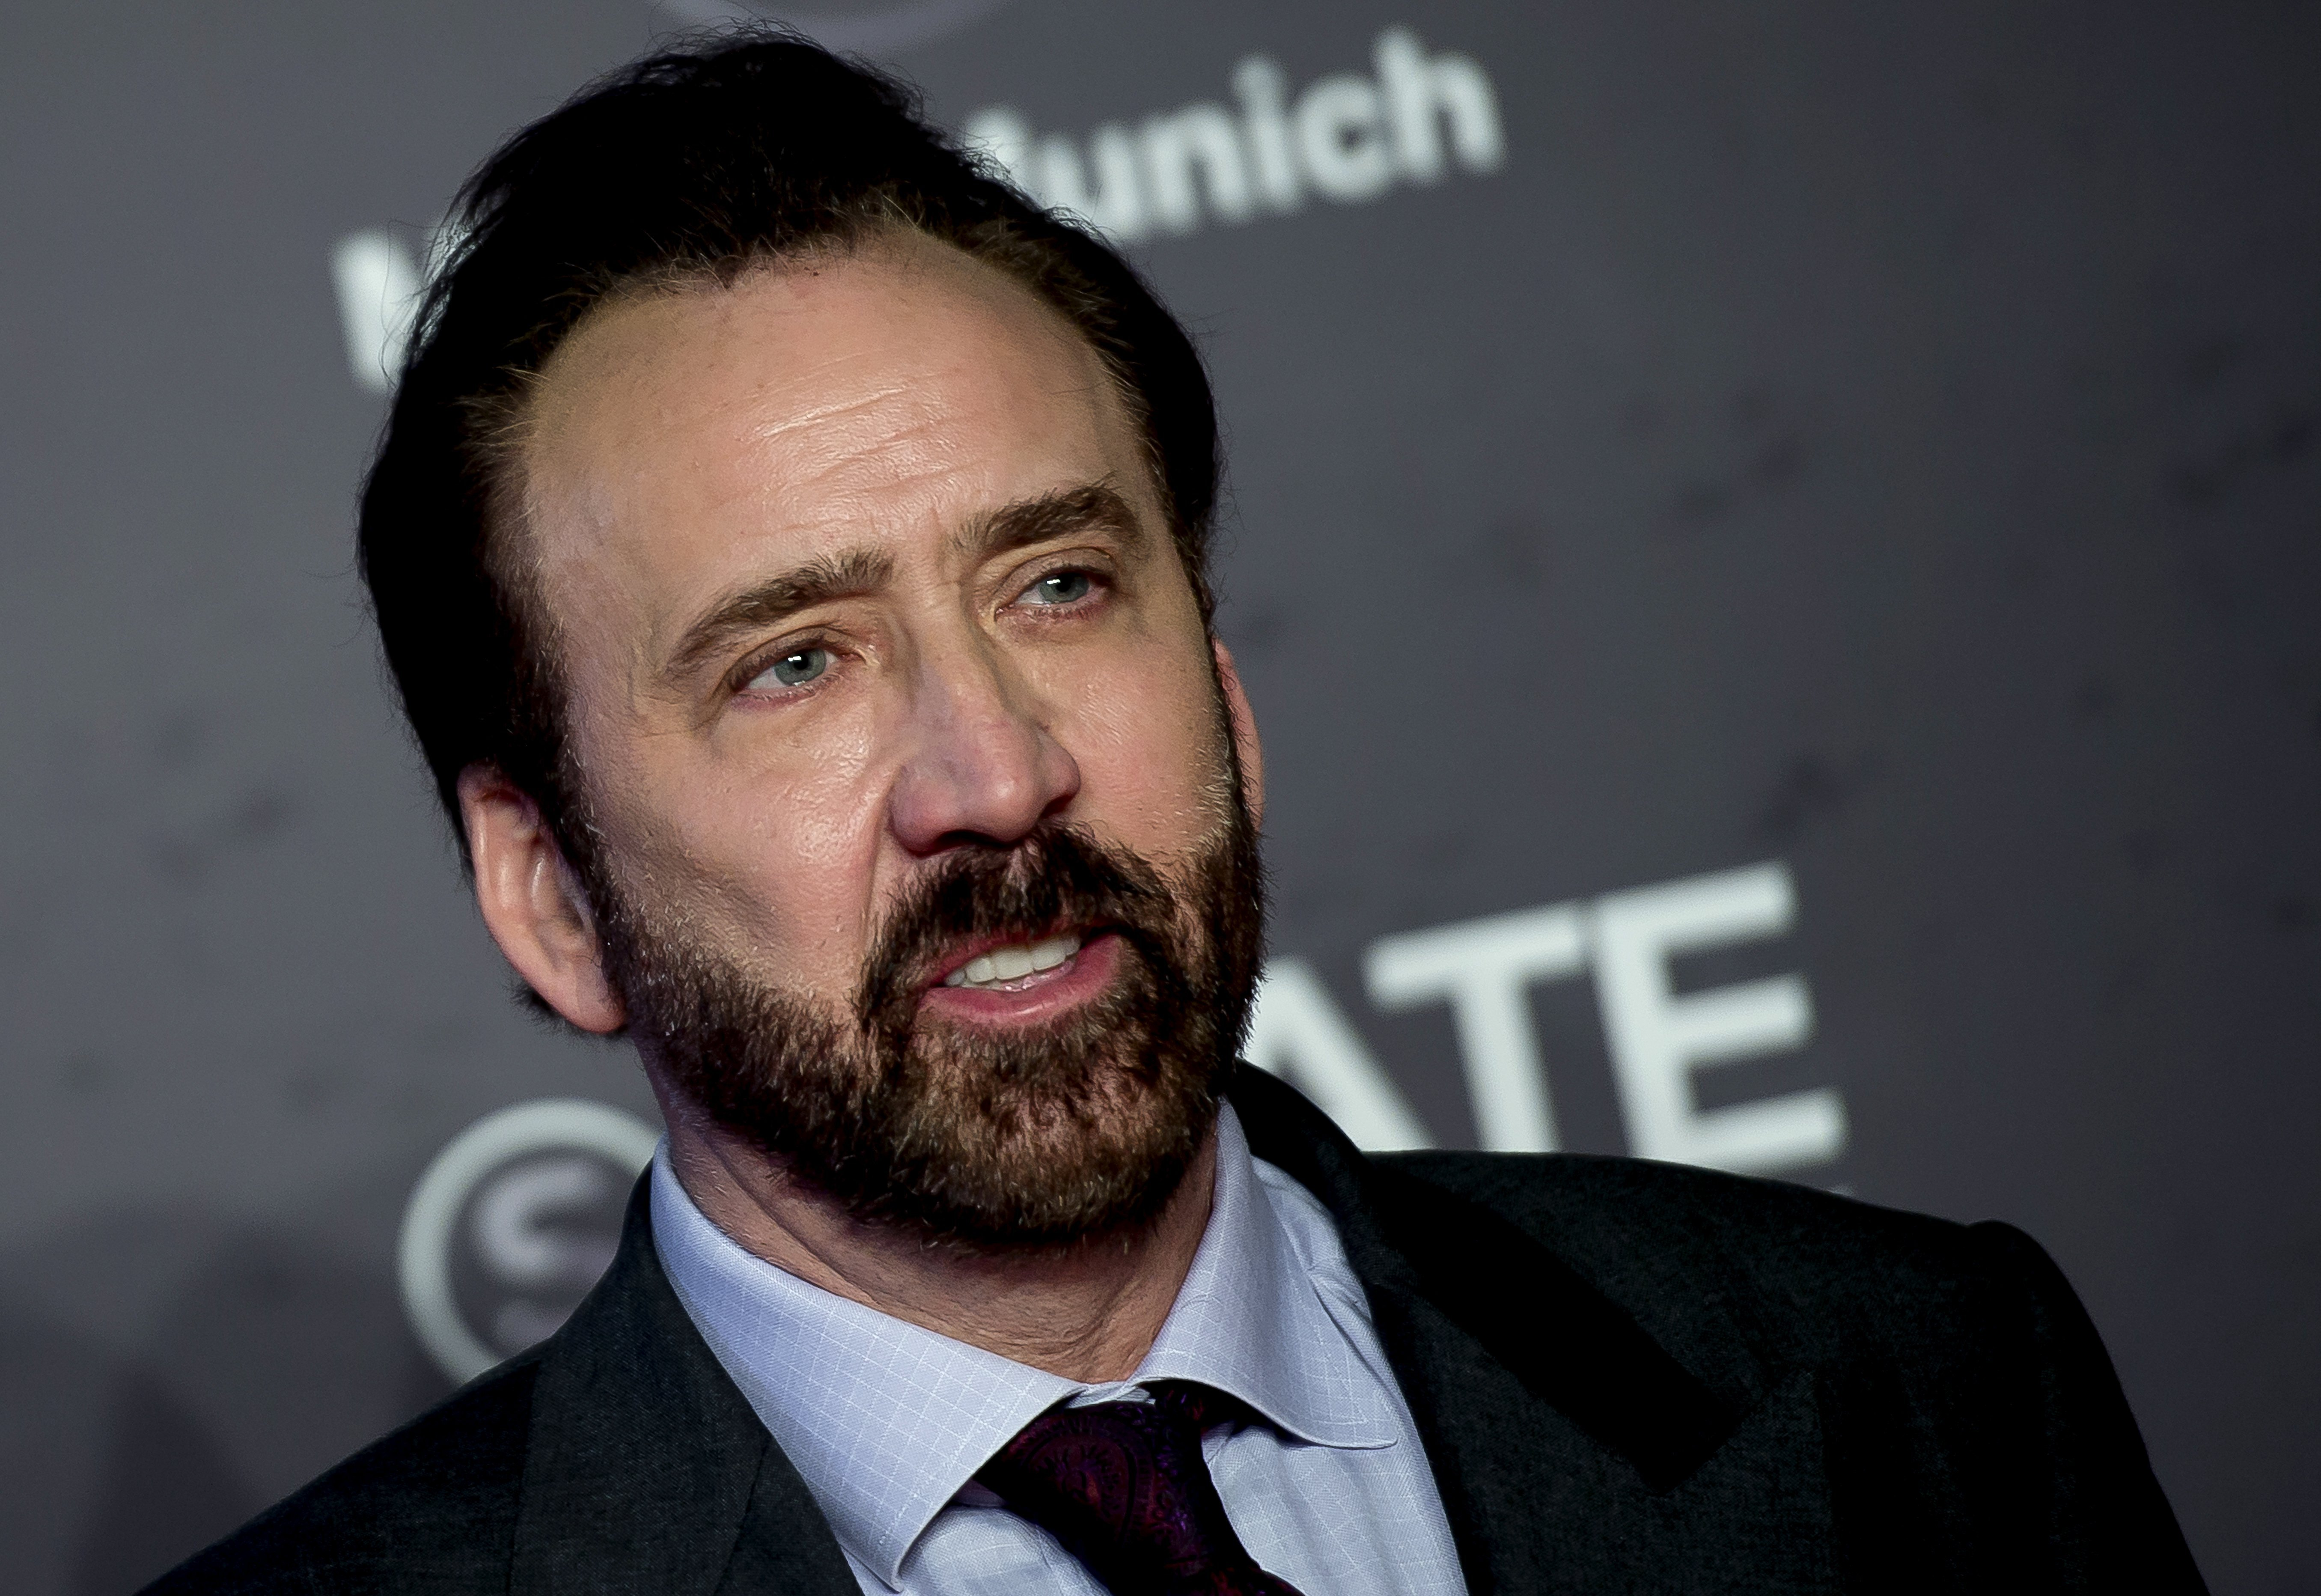 Nicholas Cage attends during `Mandy´ red Carpet at Sitges Film Festival on October on October 6, 2018, in Sitges, Spain. | Source: Getty Images.